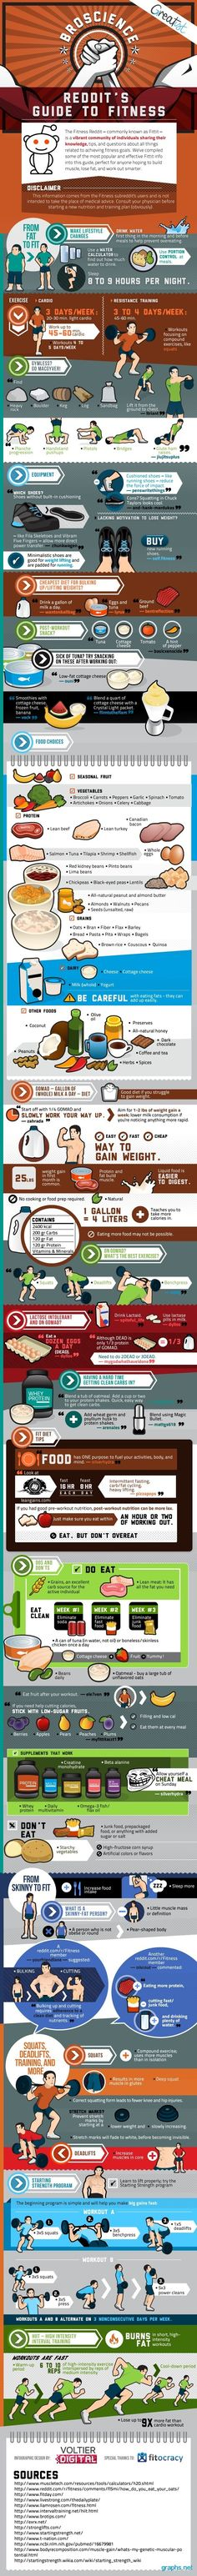 fitness workout plan to lose weight